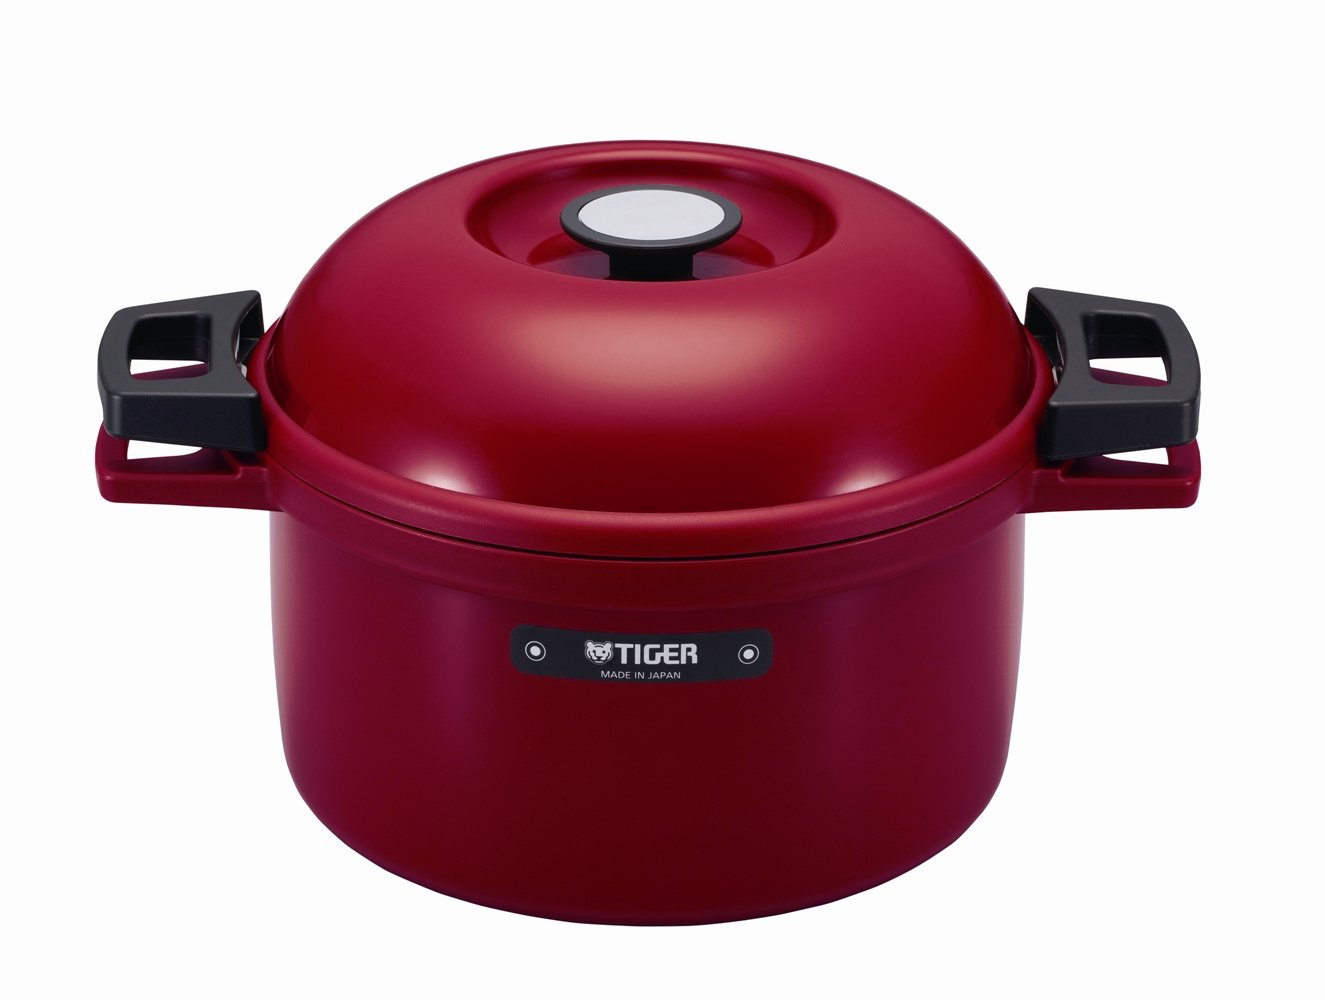 TIGER NFH-A300 RJ THERMAL MAGIC COOKER 3L (Made in Japan)